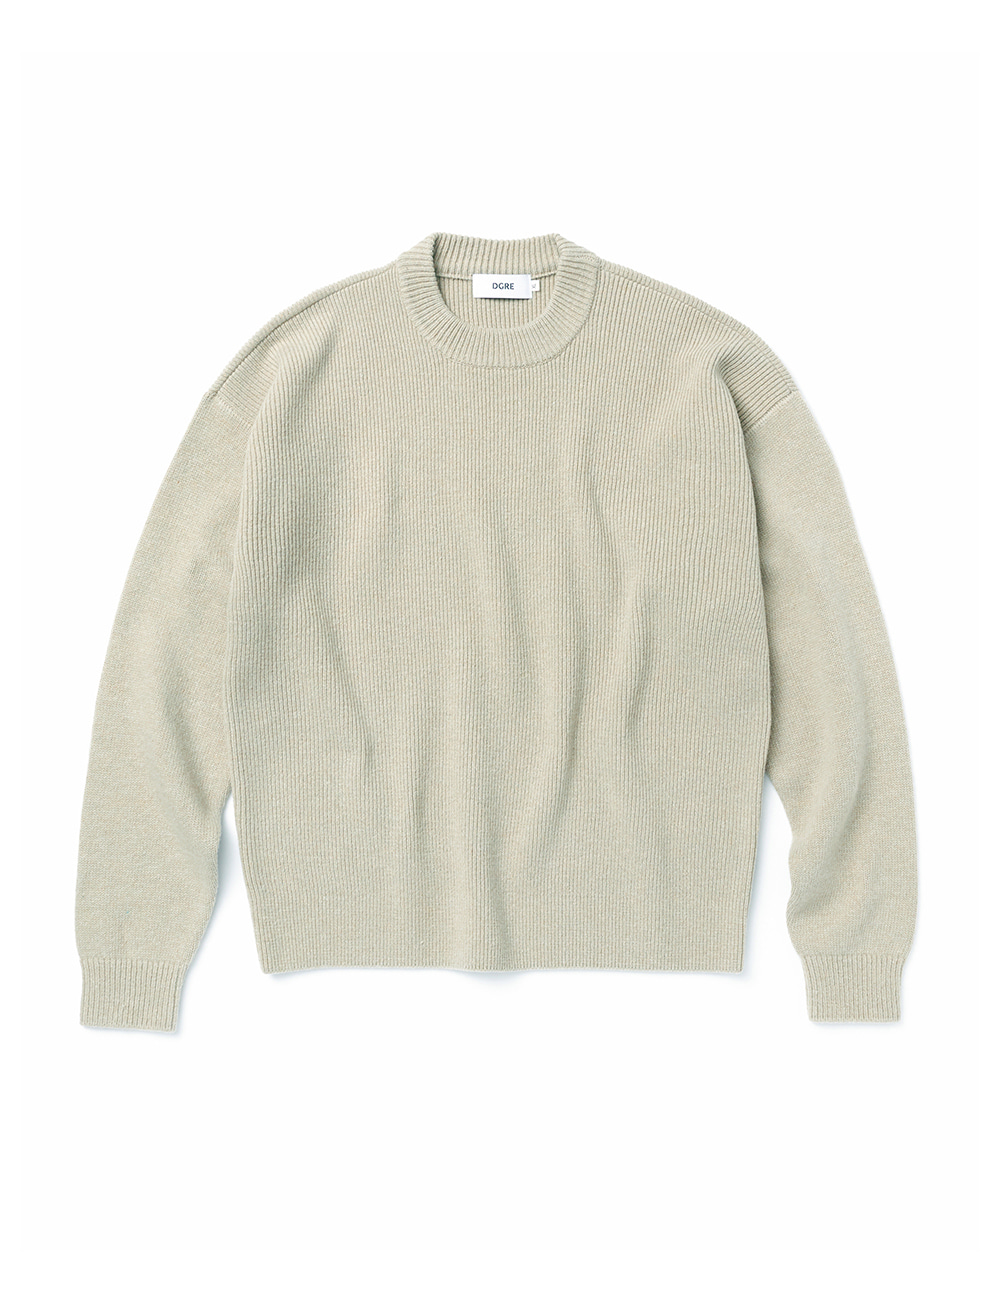 [DGRE] ANGEL WOOL RIB CREW KNIT (CEMENT)